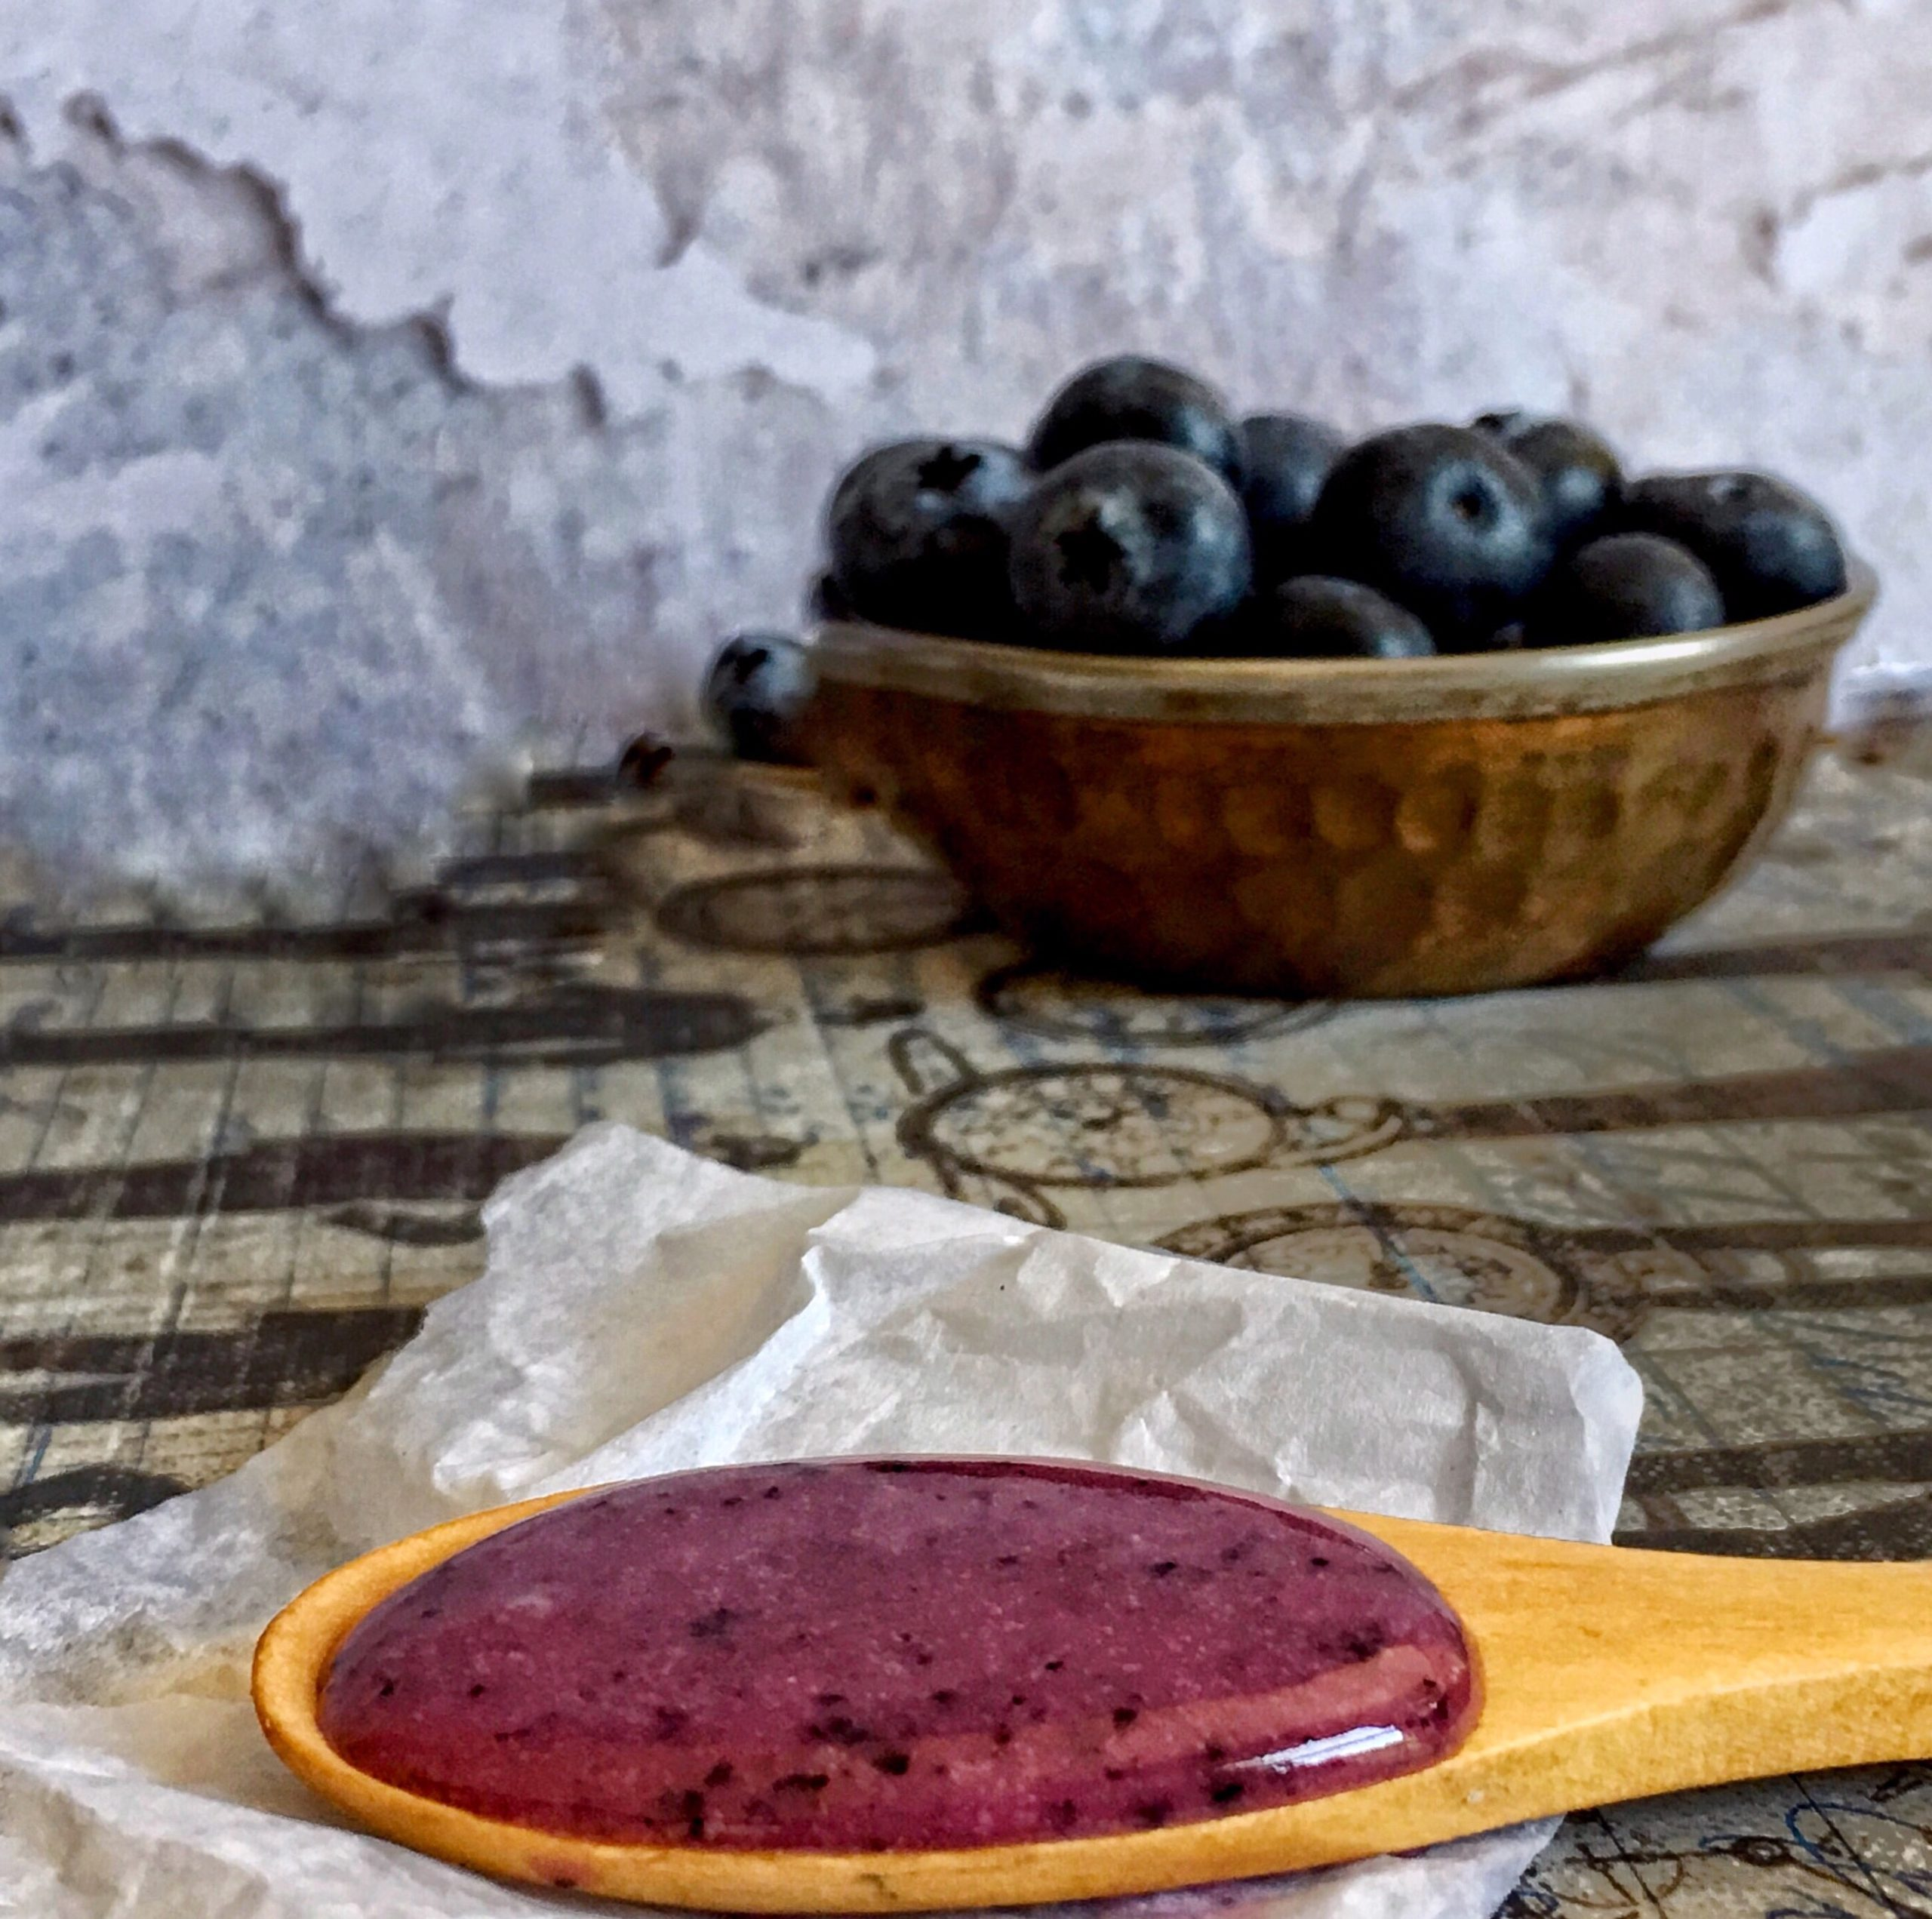 Blueberries and a spoon of blueberry glaze